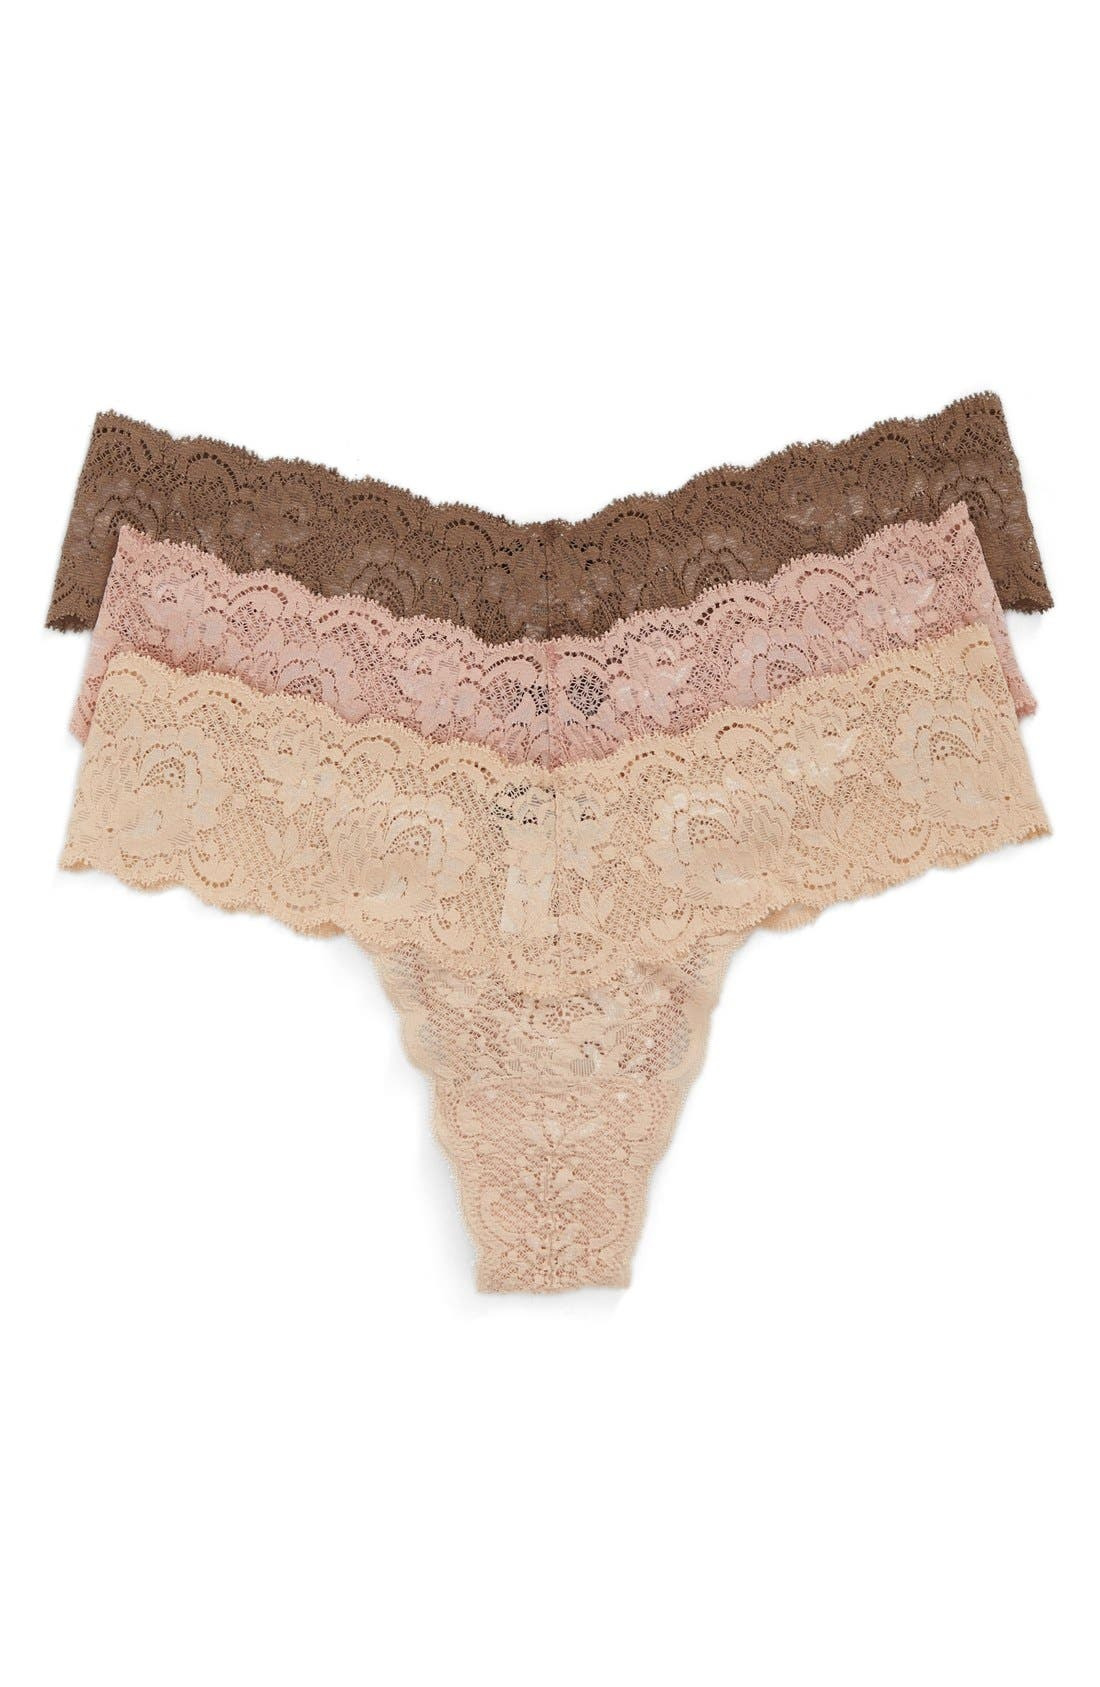 Cosabella 'Never Say Never Cutie' Thong (3-Pack)